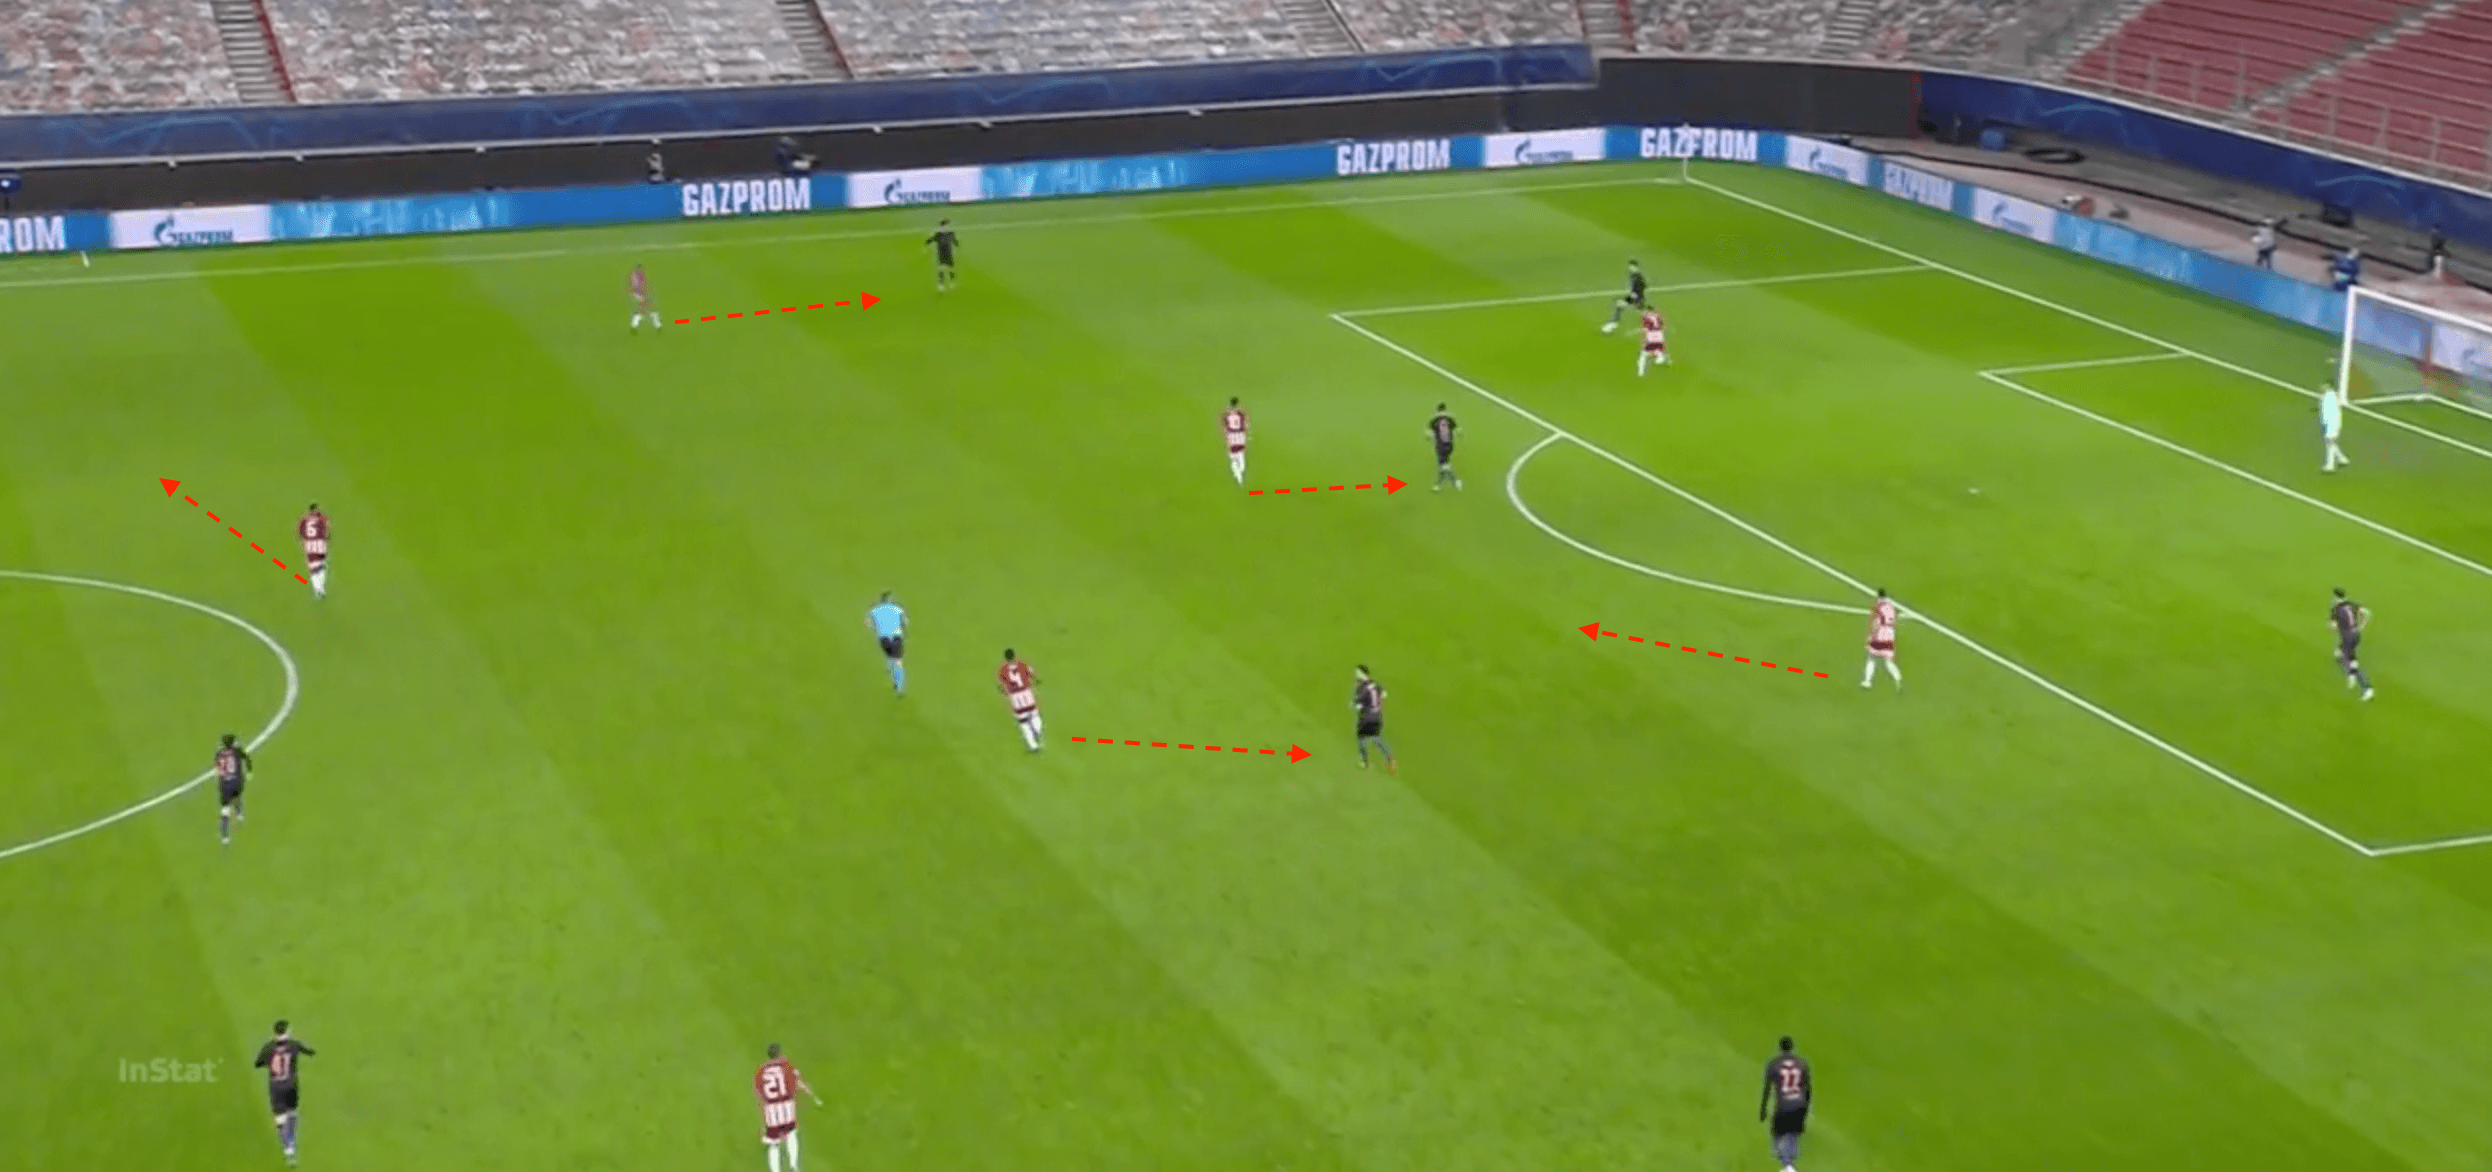 UEFA Champions League 2020/21: Olympiacos vs Manchester City - tactical analysis tactics